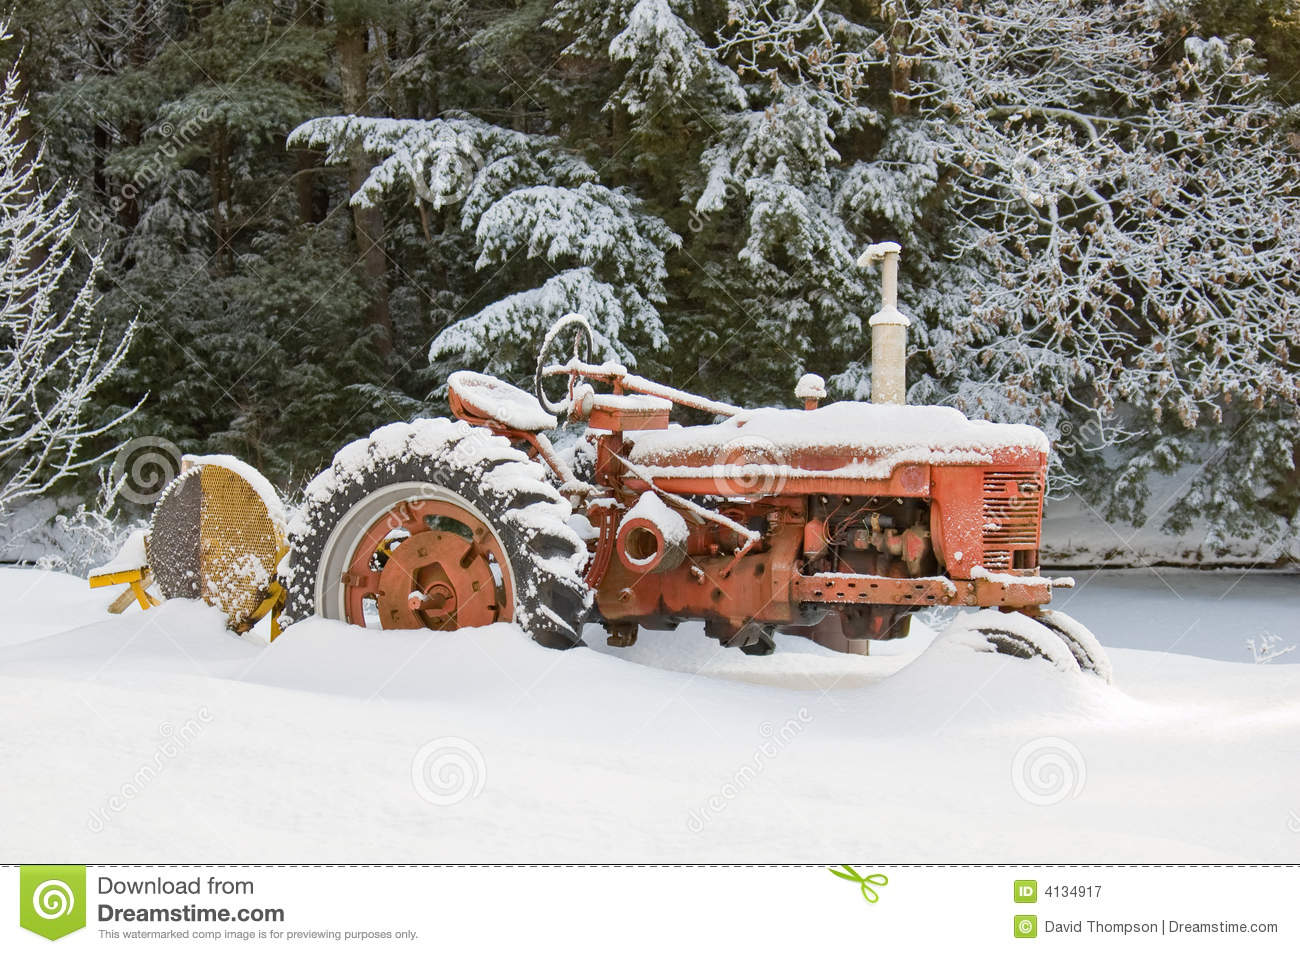 Snow Plow Prices >> Snow Covered Rustic Farm Tractor Stock Image - Image of tractor, plow: 4134917